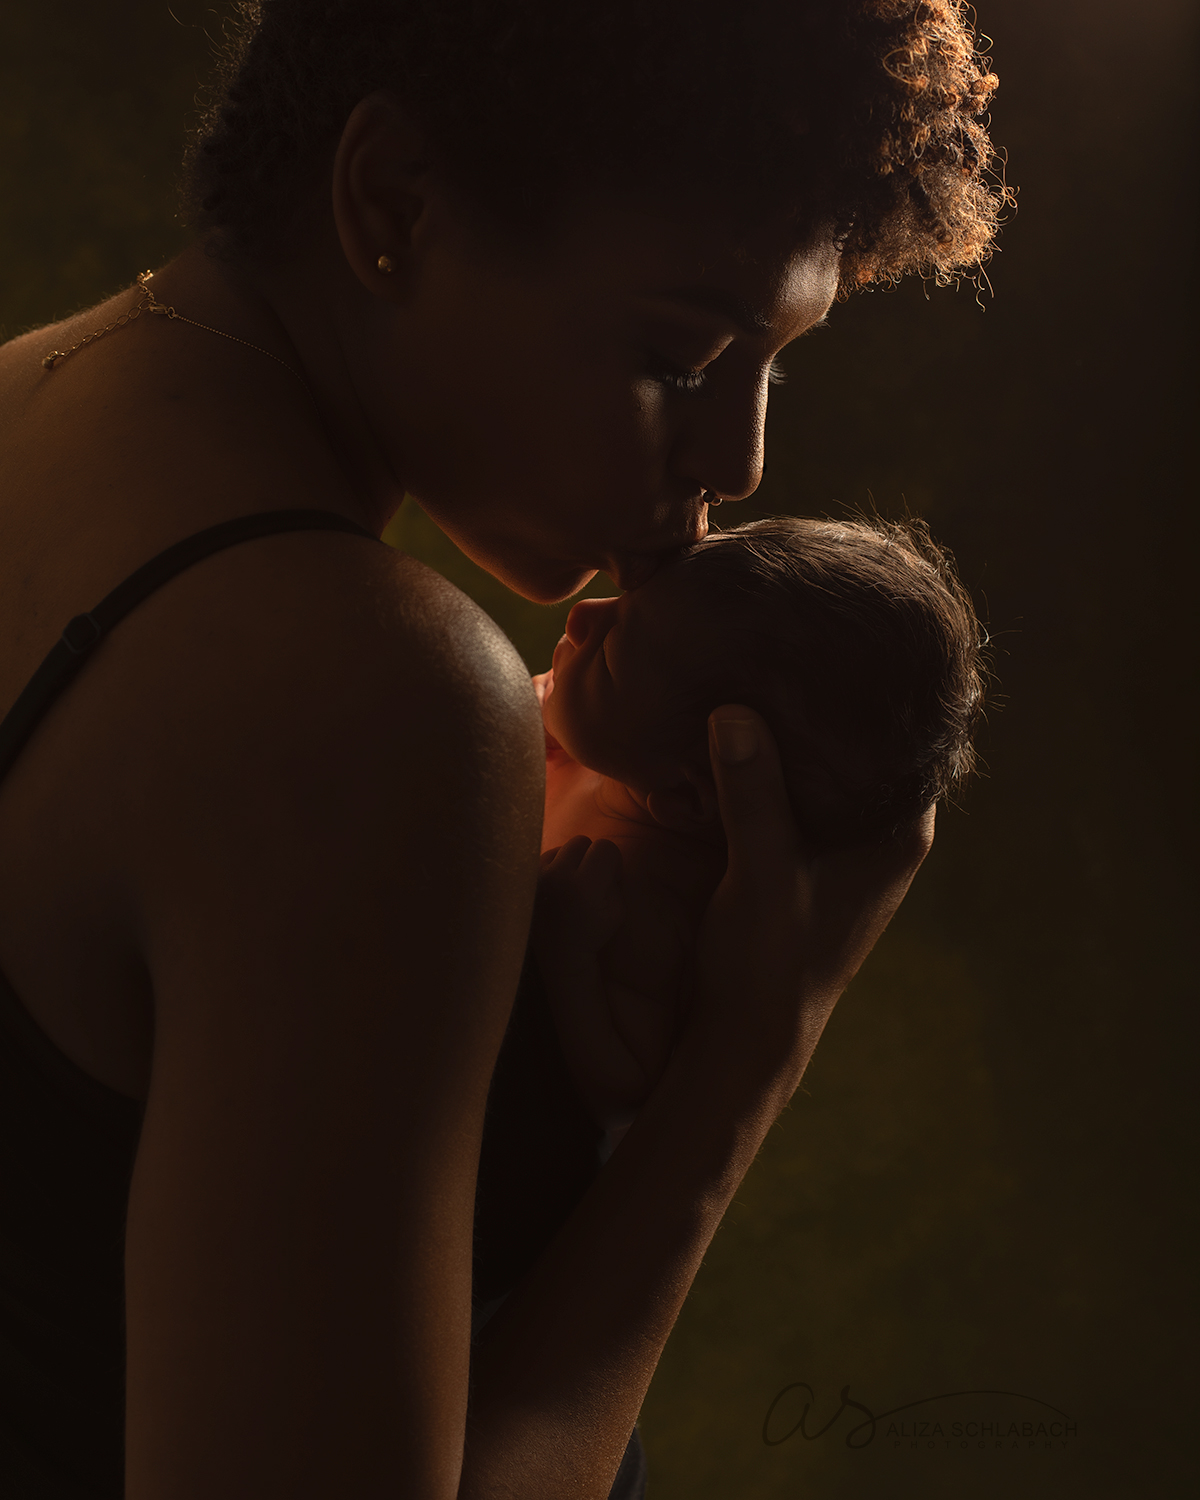 Newborn and mother silhouette